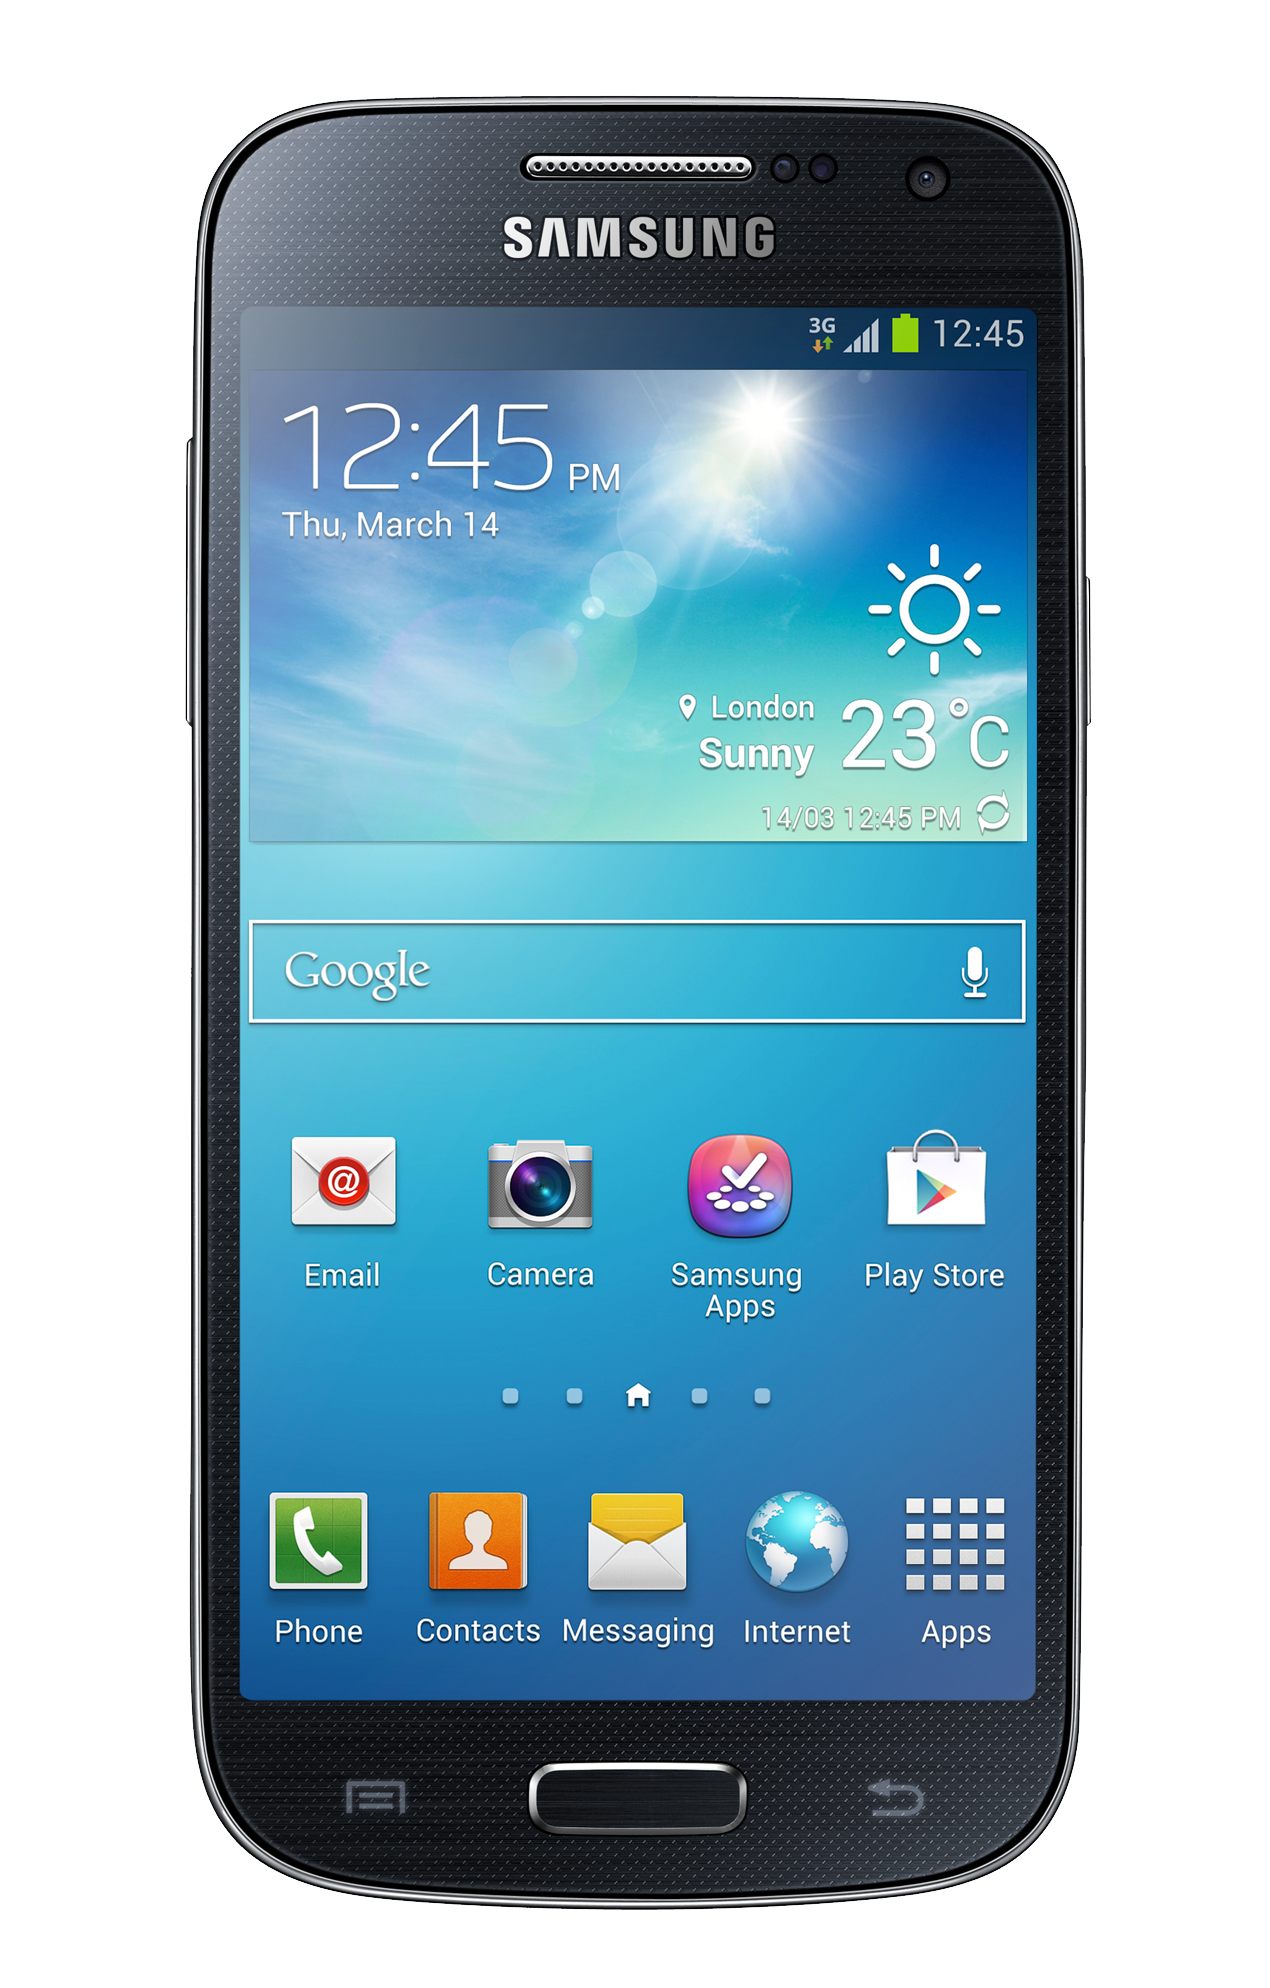 Android Smartphone PNG Image - PurePNG | Free transparent ...